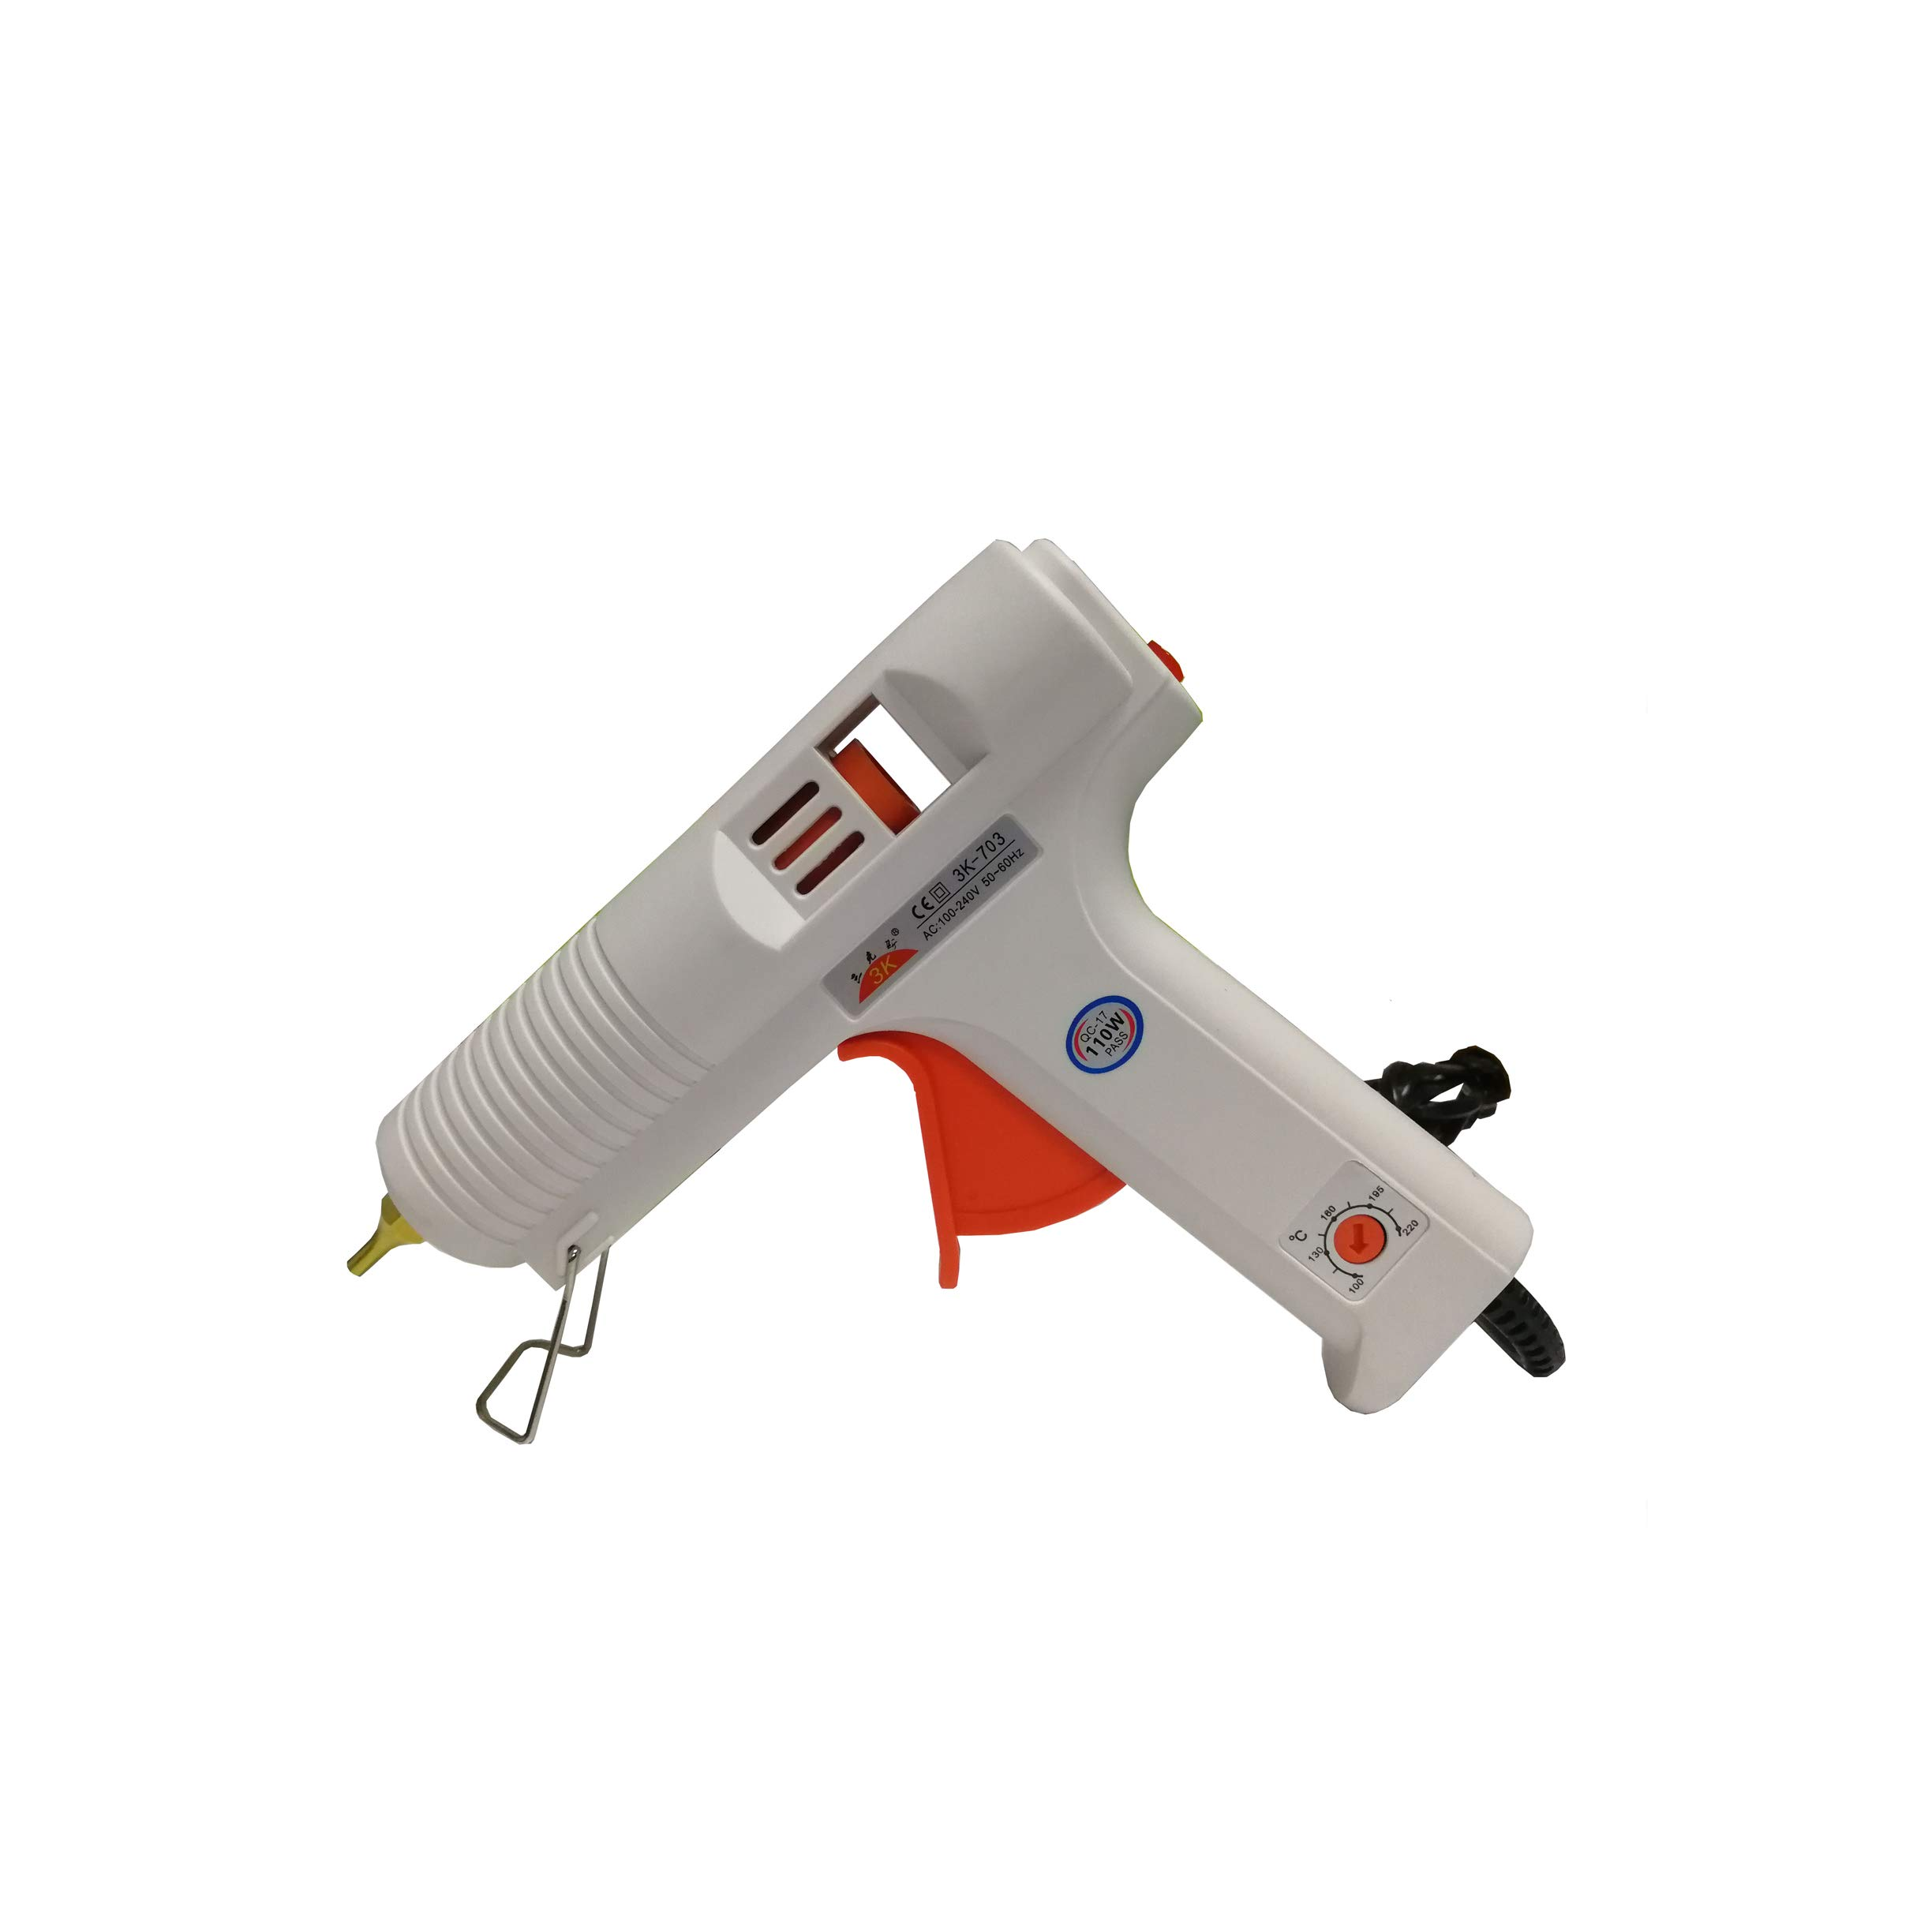 Hot Melt Glue Gun for DIY Arts Crafts Projects and Small Repair Jobs Temp Adjustable 100 Watt AC110-240V White